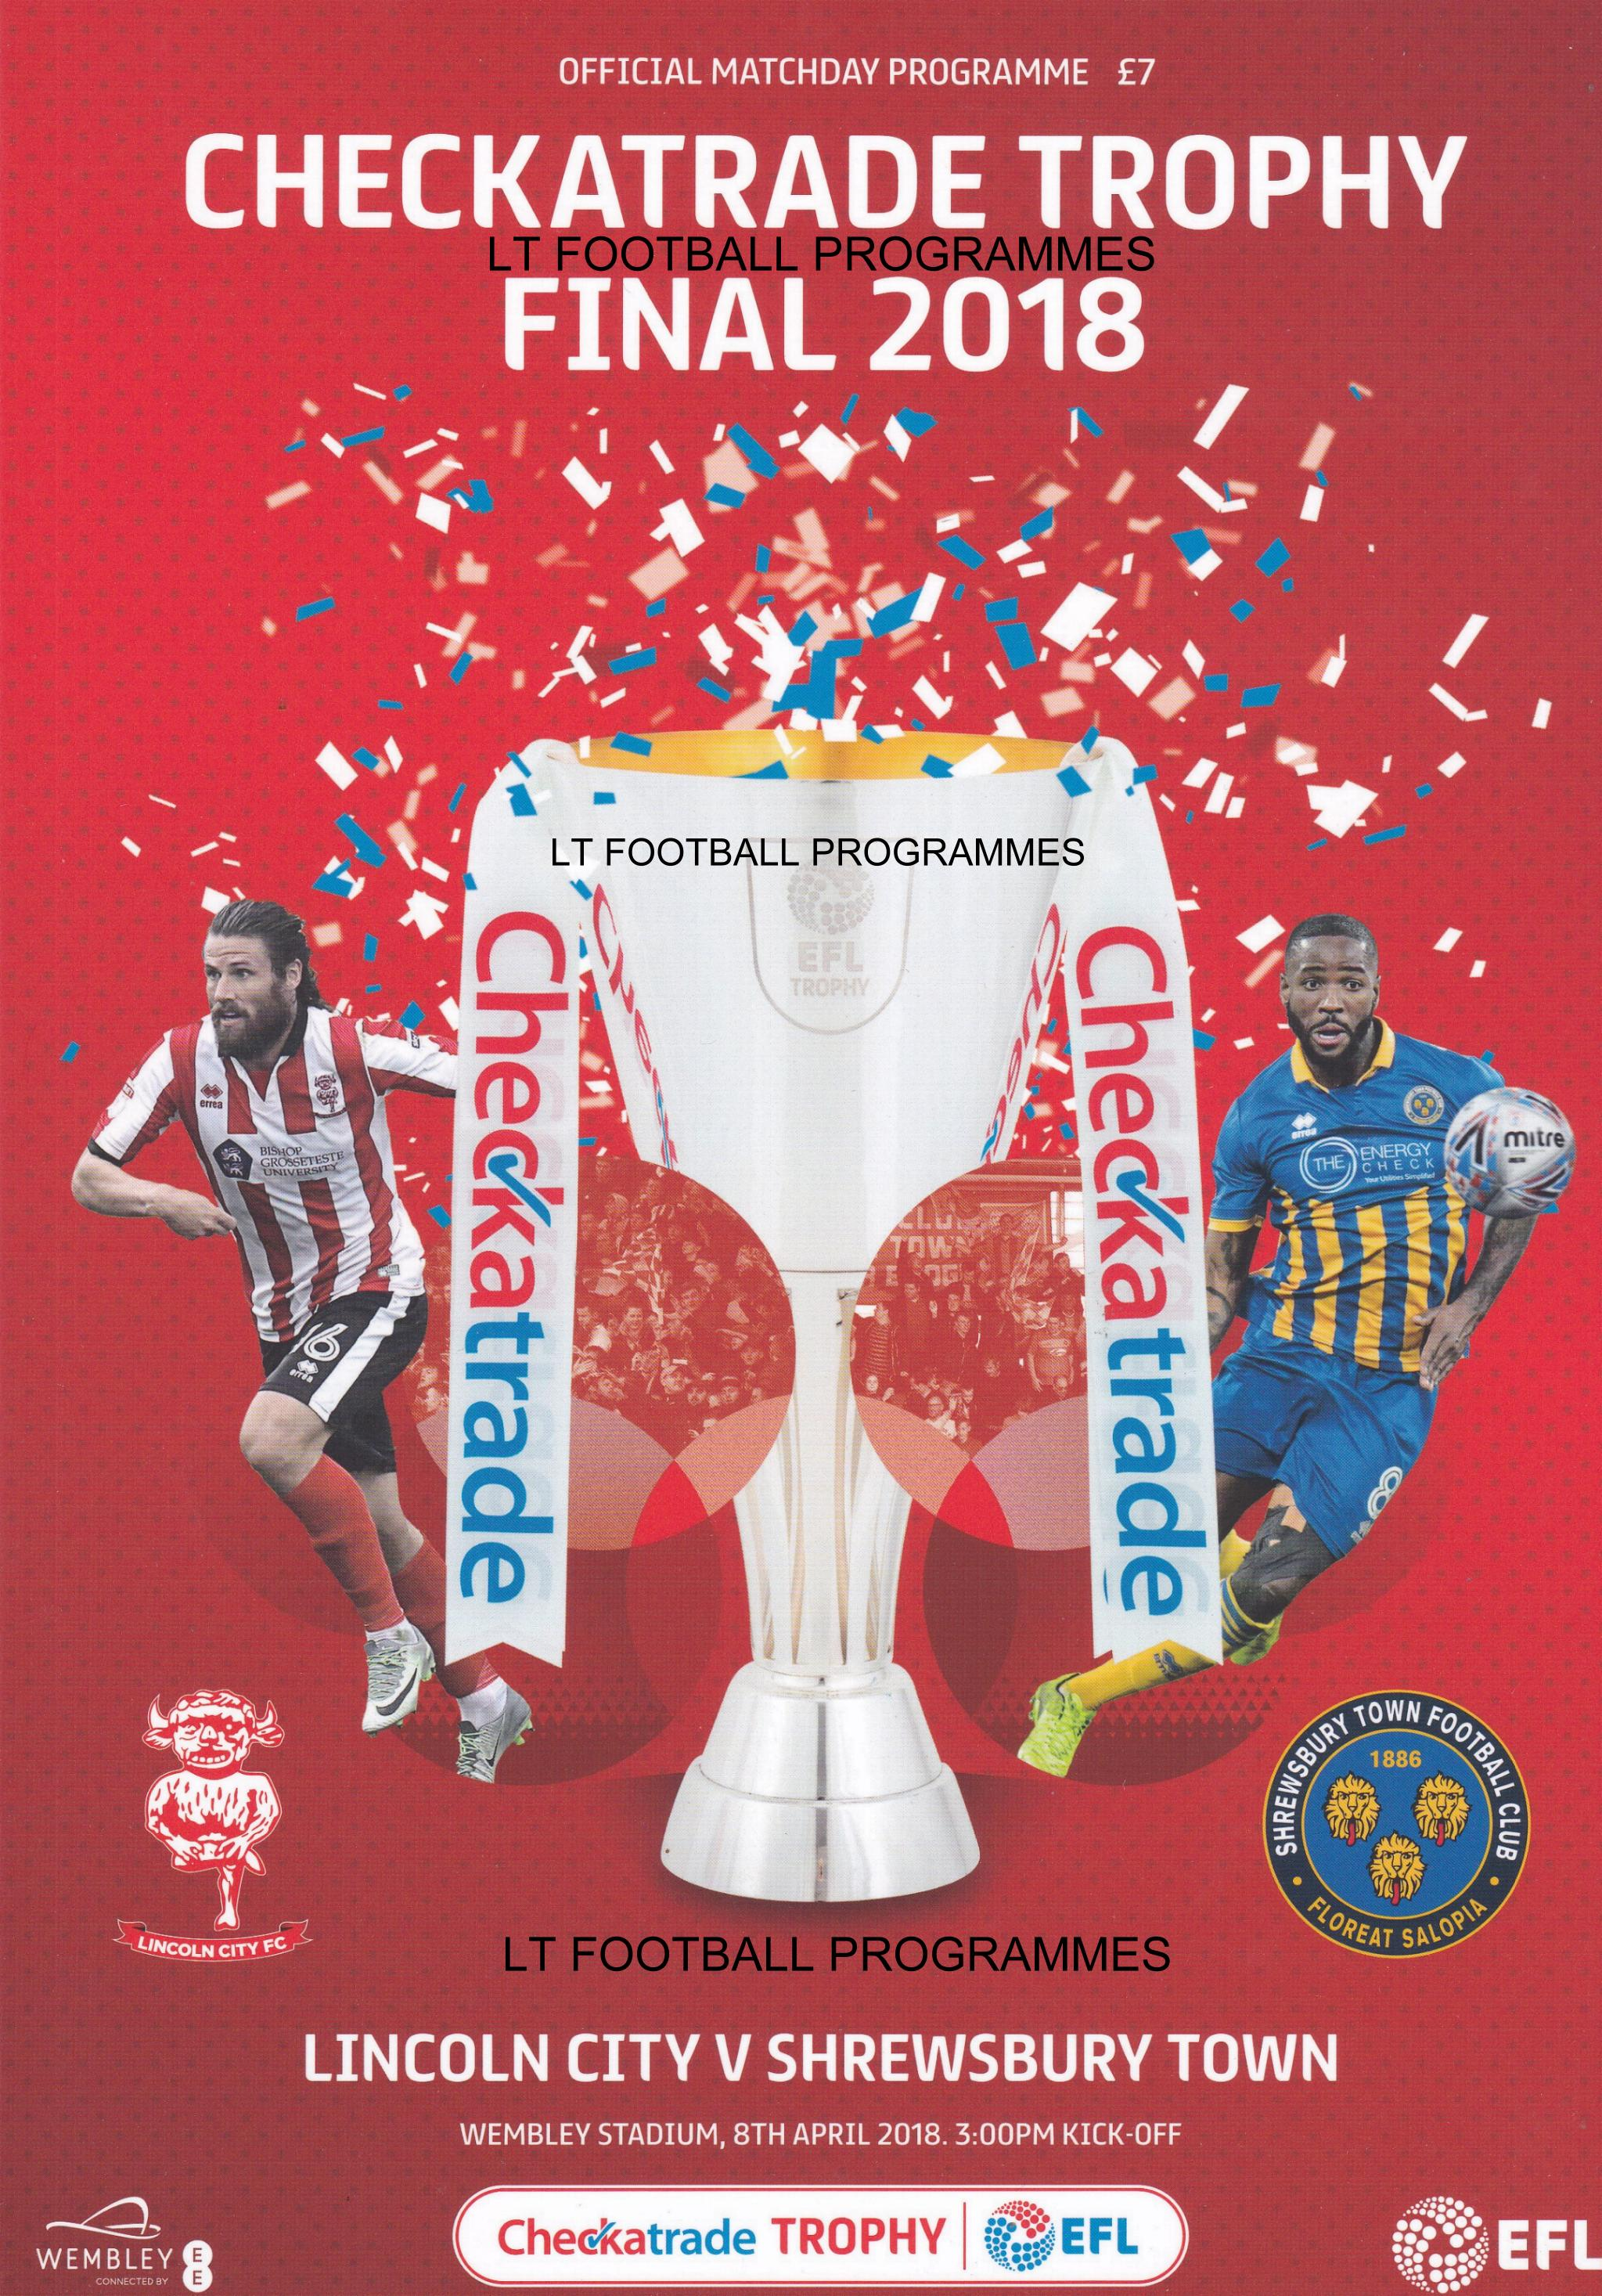 2018 CHECKATRADE TROPHY FINAL - LINCOLN CITY v SHREWSBURY TOWN